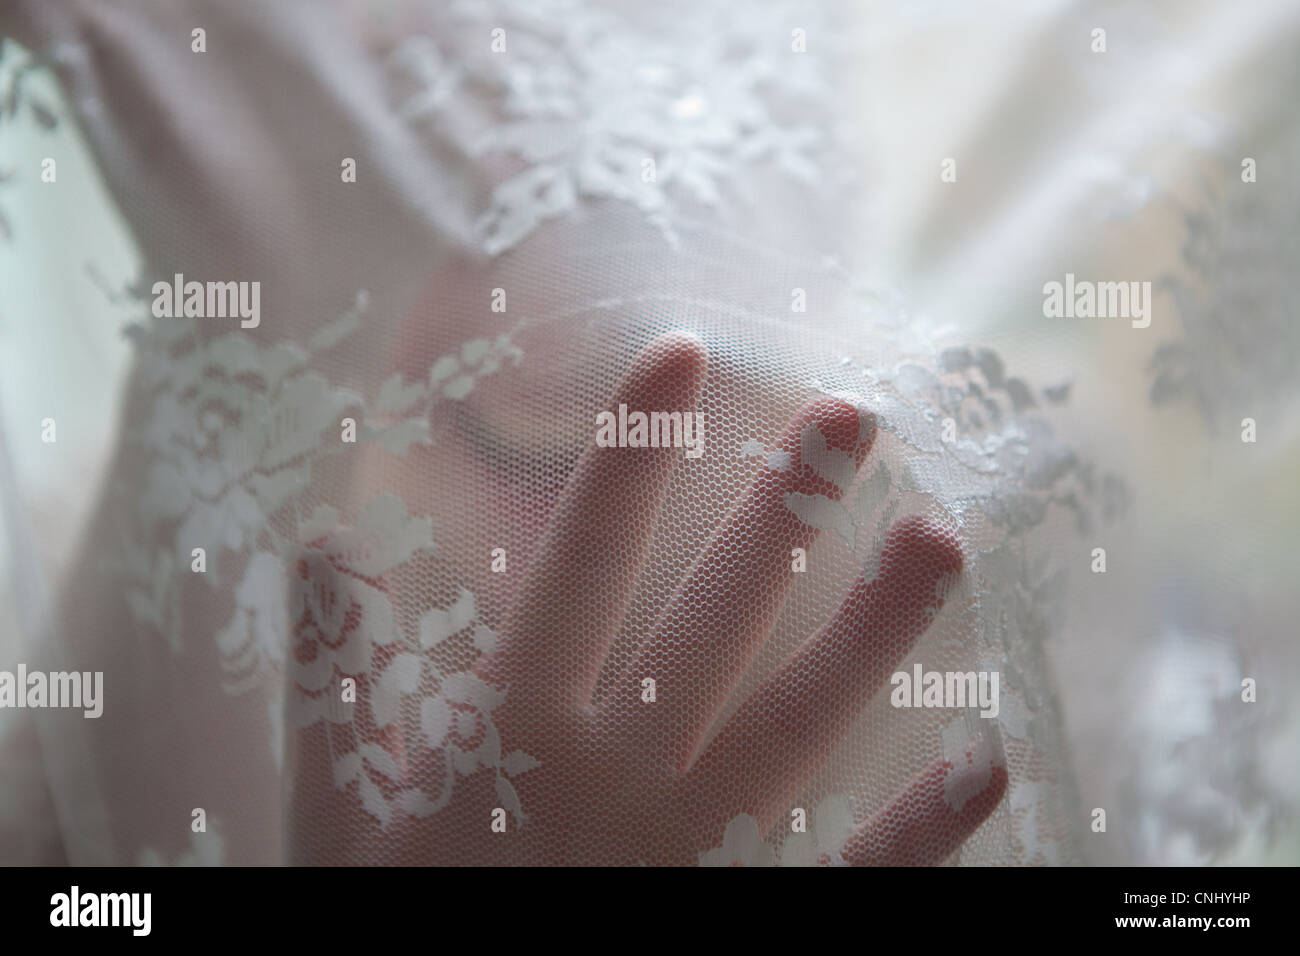 Hand of woman behind lace curtain - Stock Image